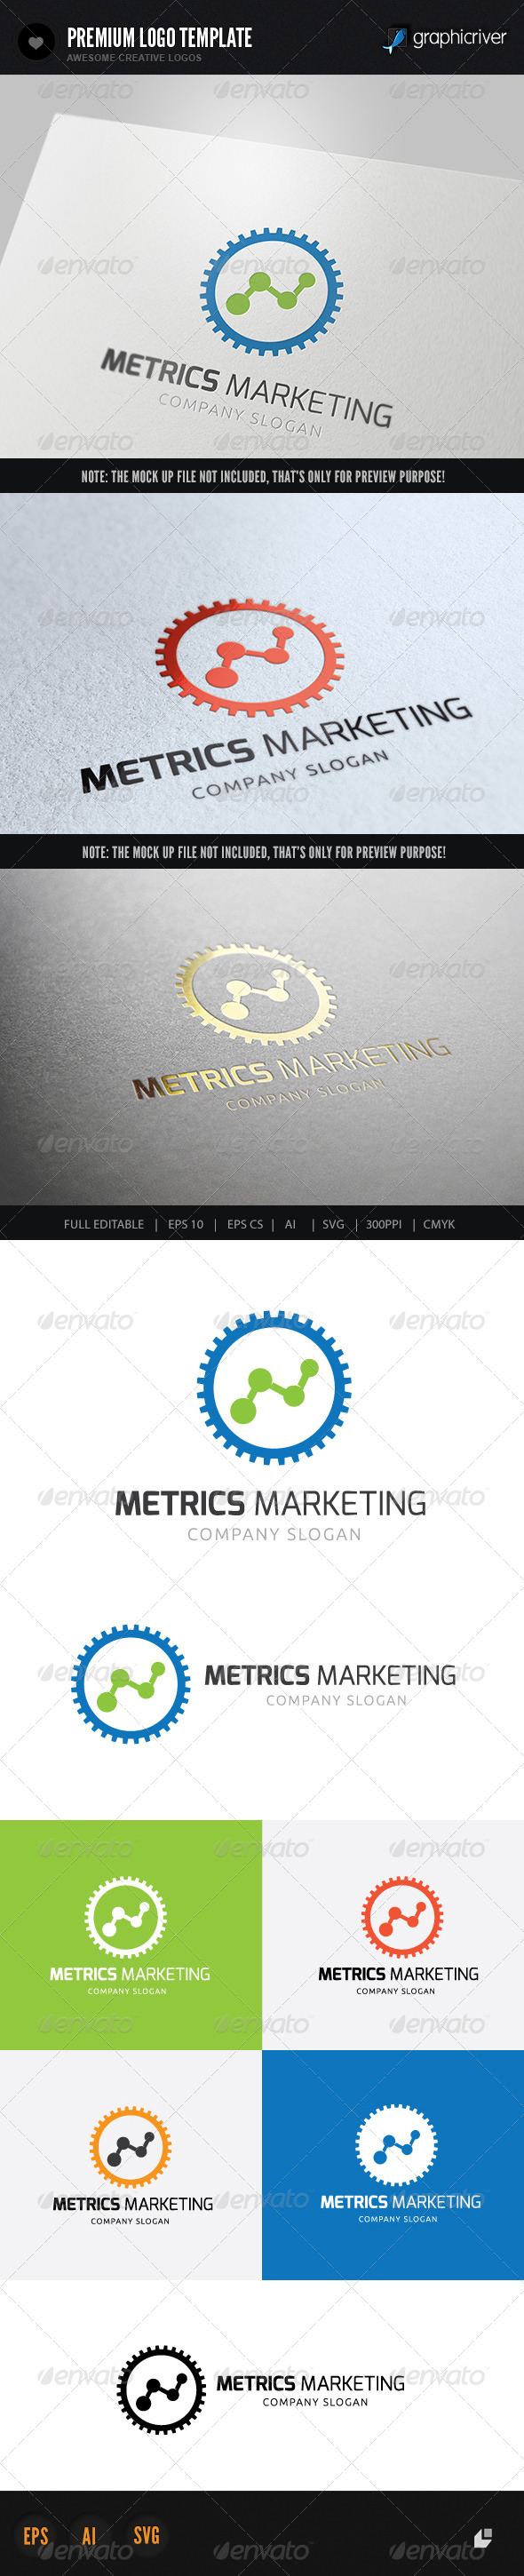 GraphicRiver Metrics Marketing 6057151